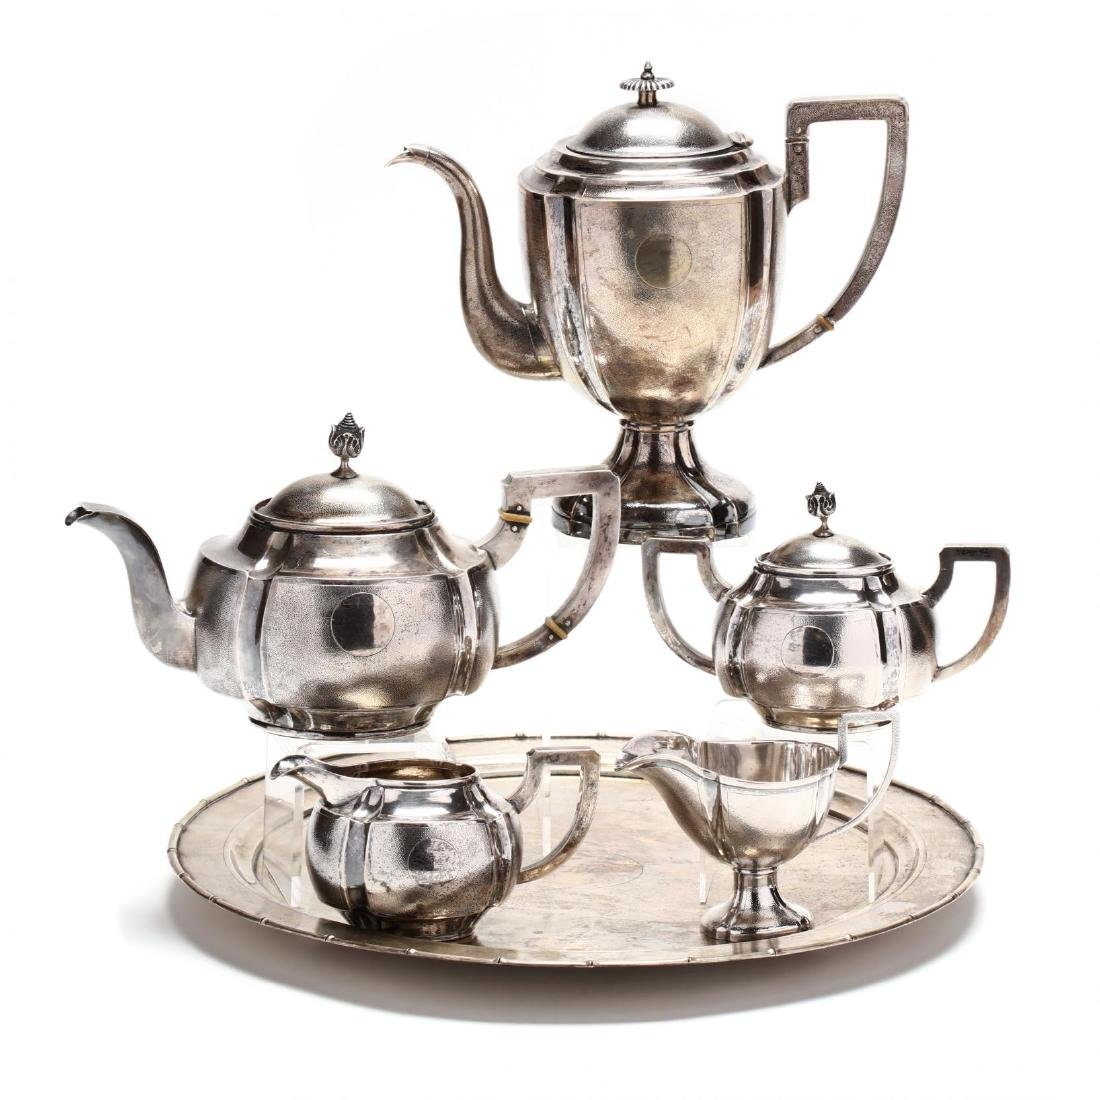 A Chinese Export Silver Art Deco Tea & Coffee Service